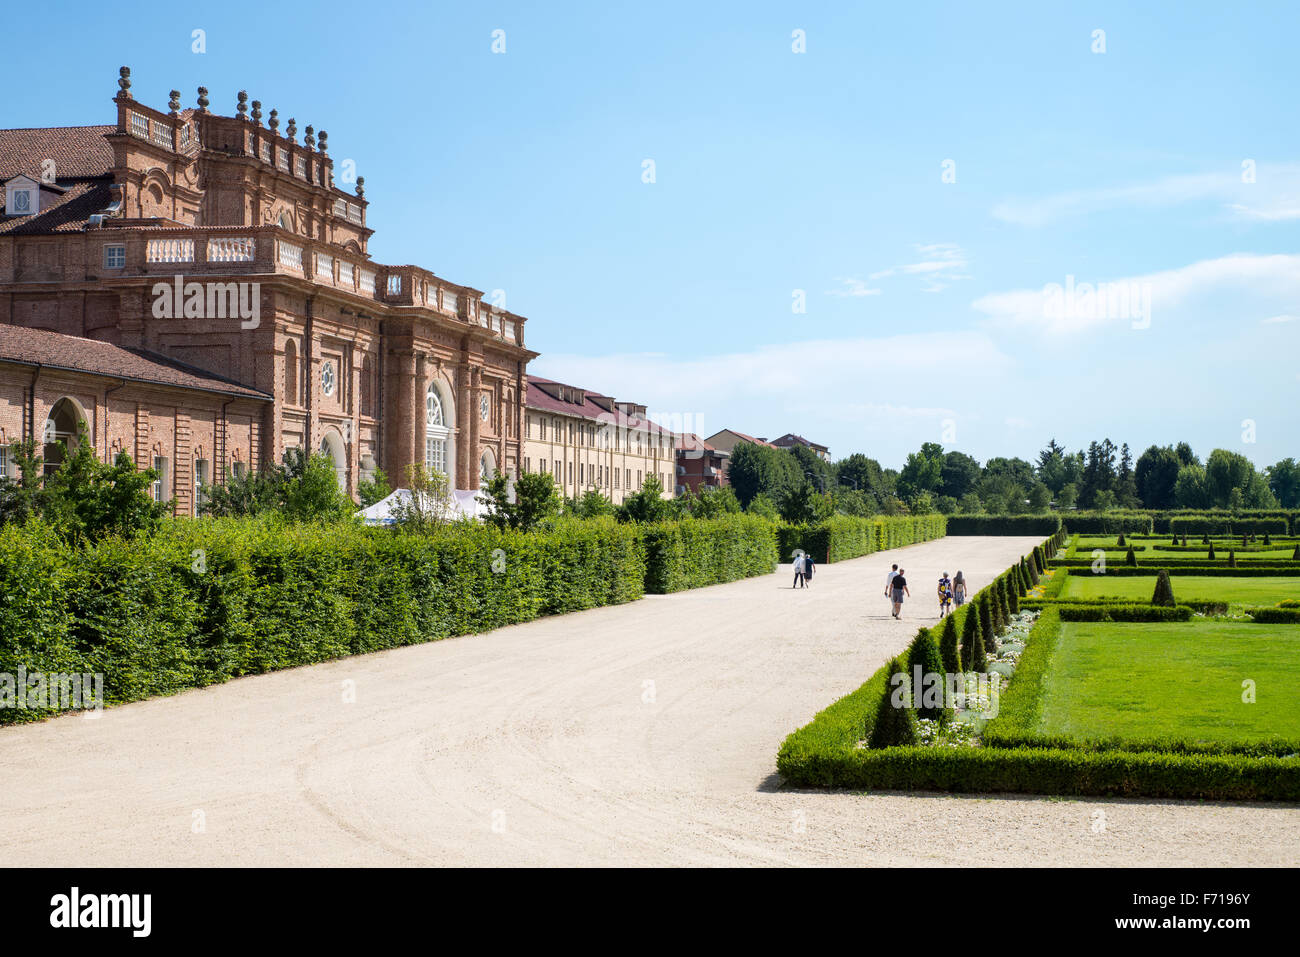 Italy, Venaria, Royal Palace, the gardens and the Juvarriane stables - Stock Image